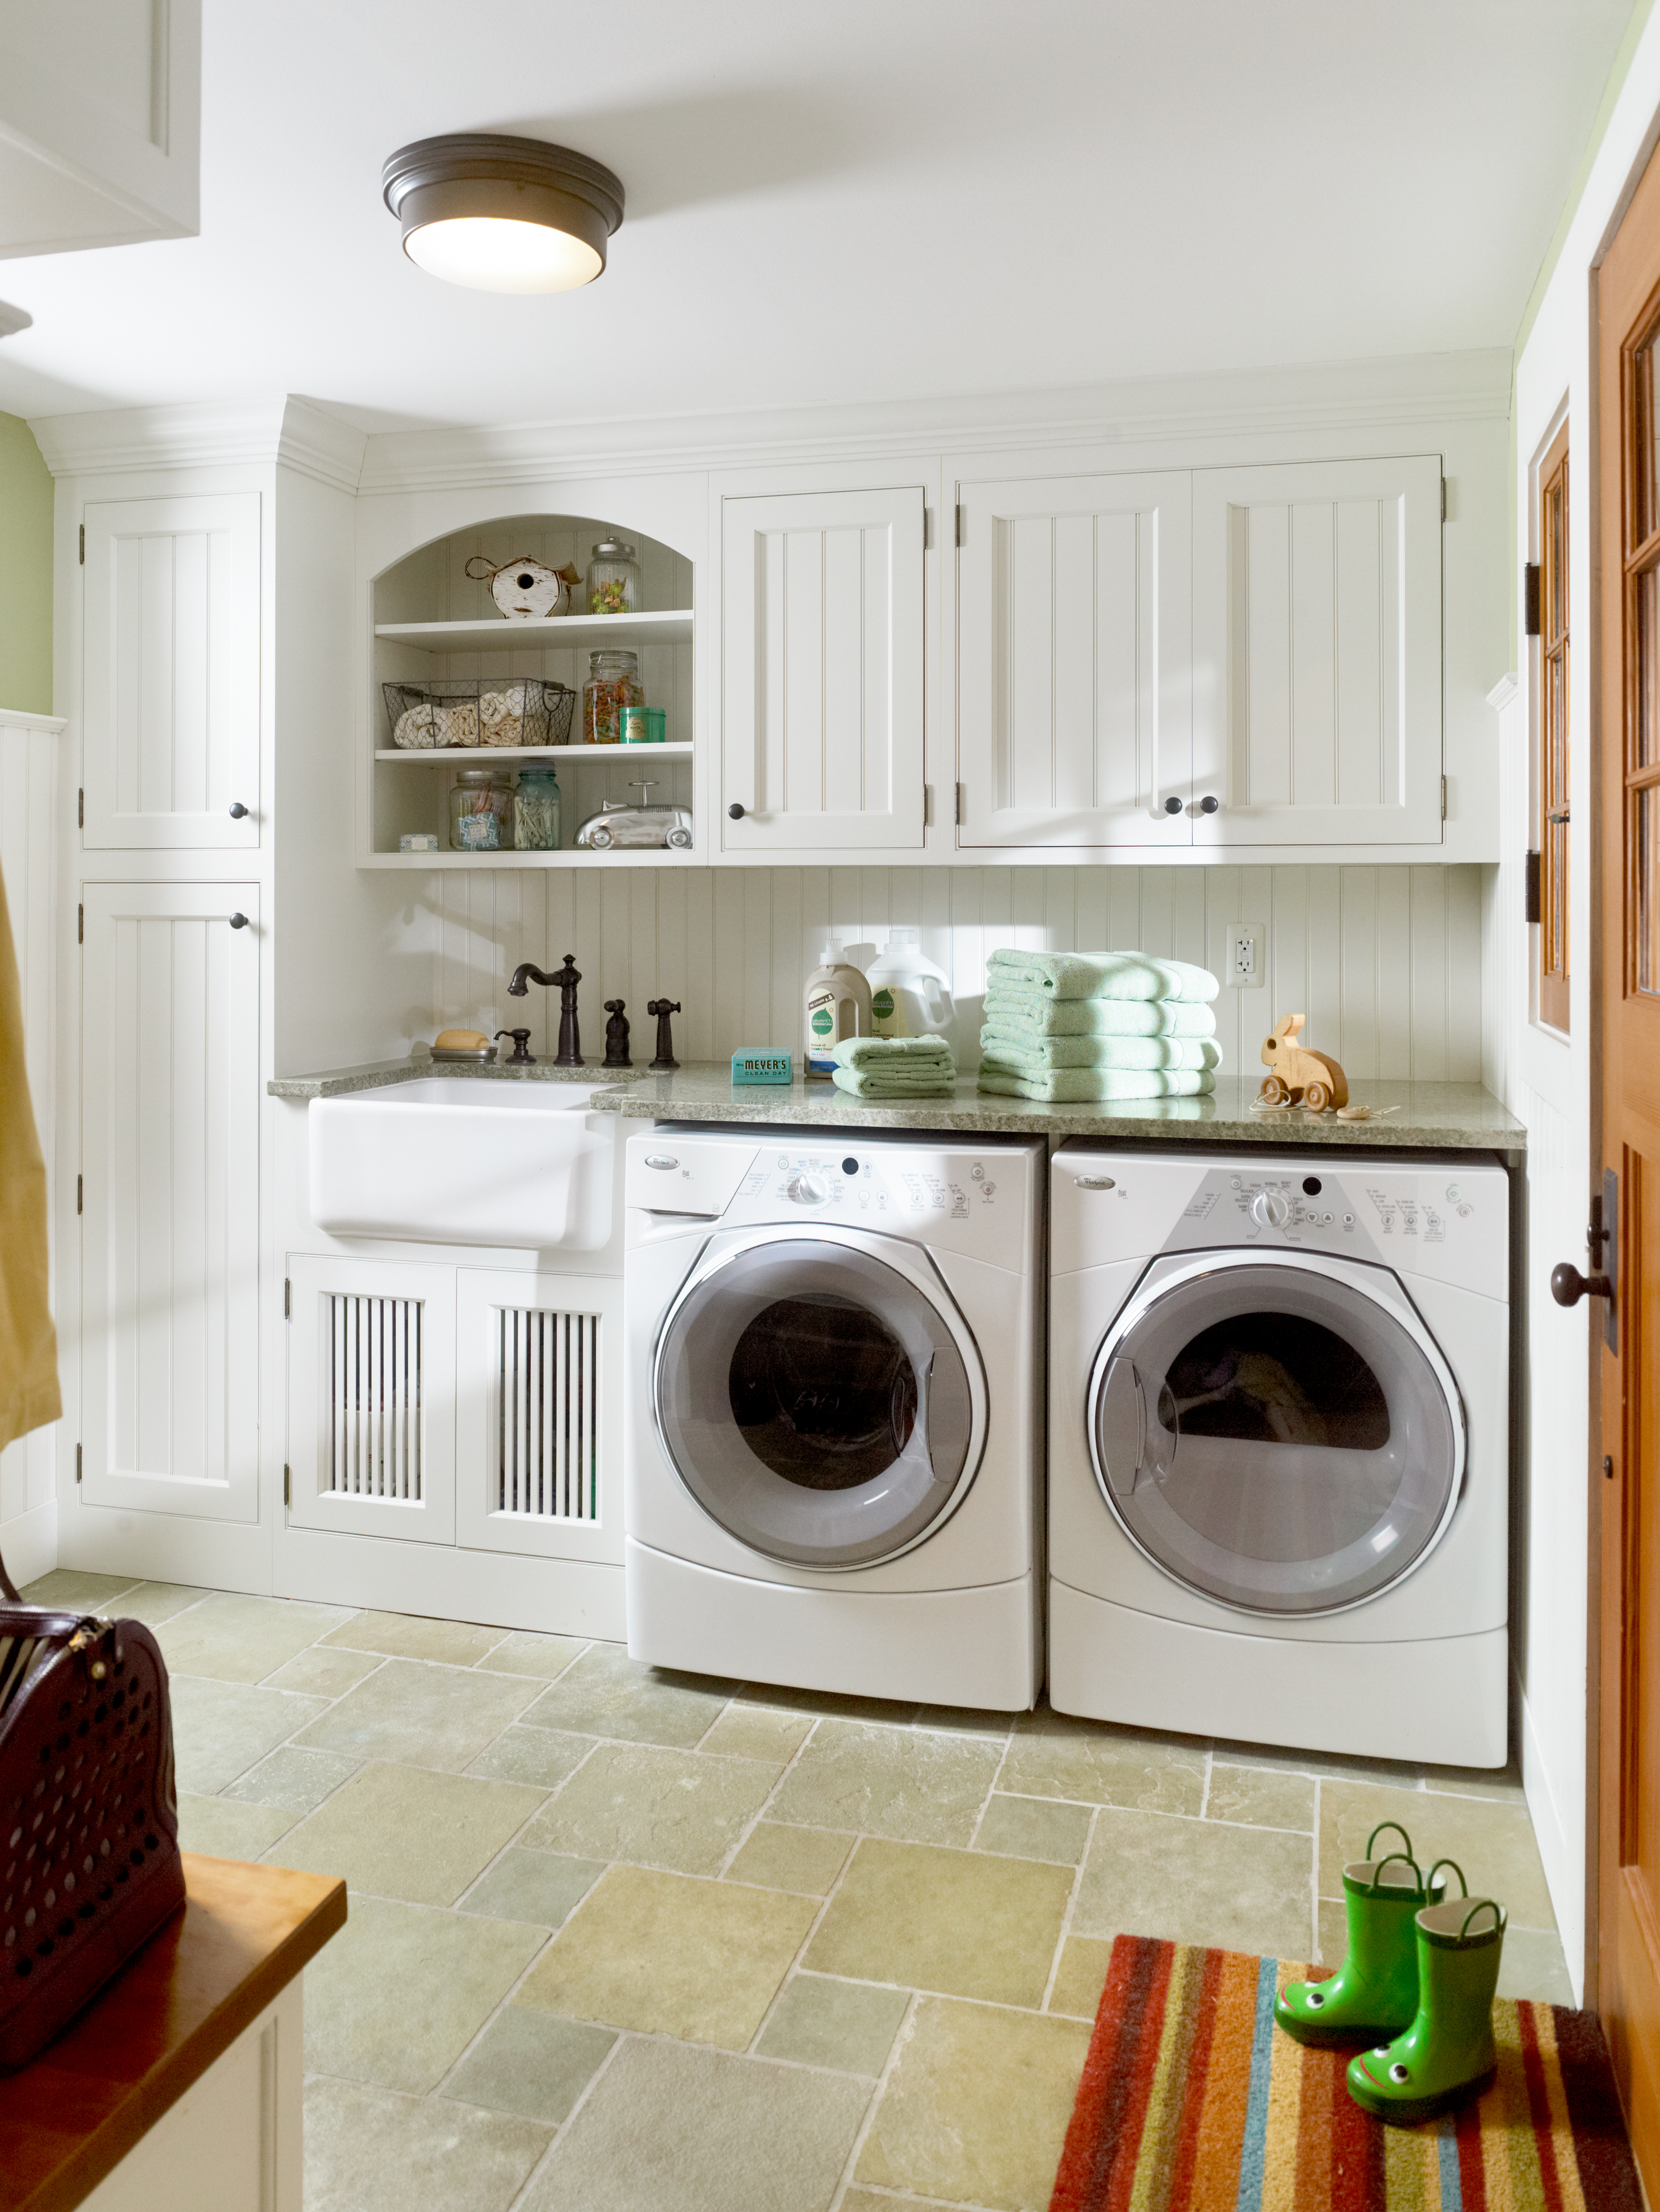 Dilley Kitchen, Laundry Room, Washer and Dryer